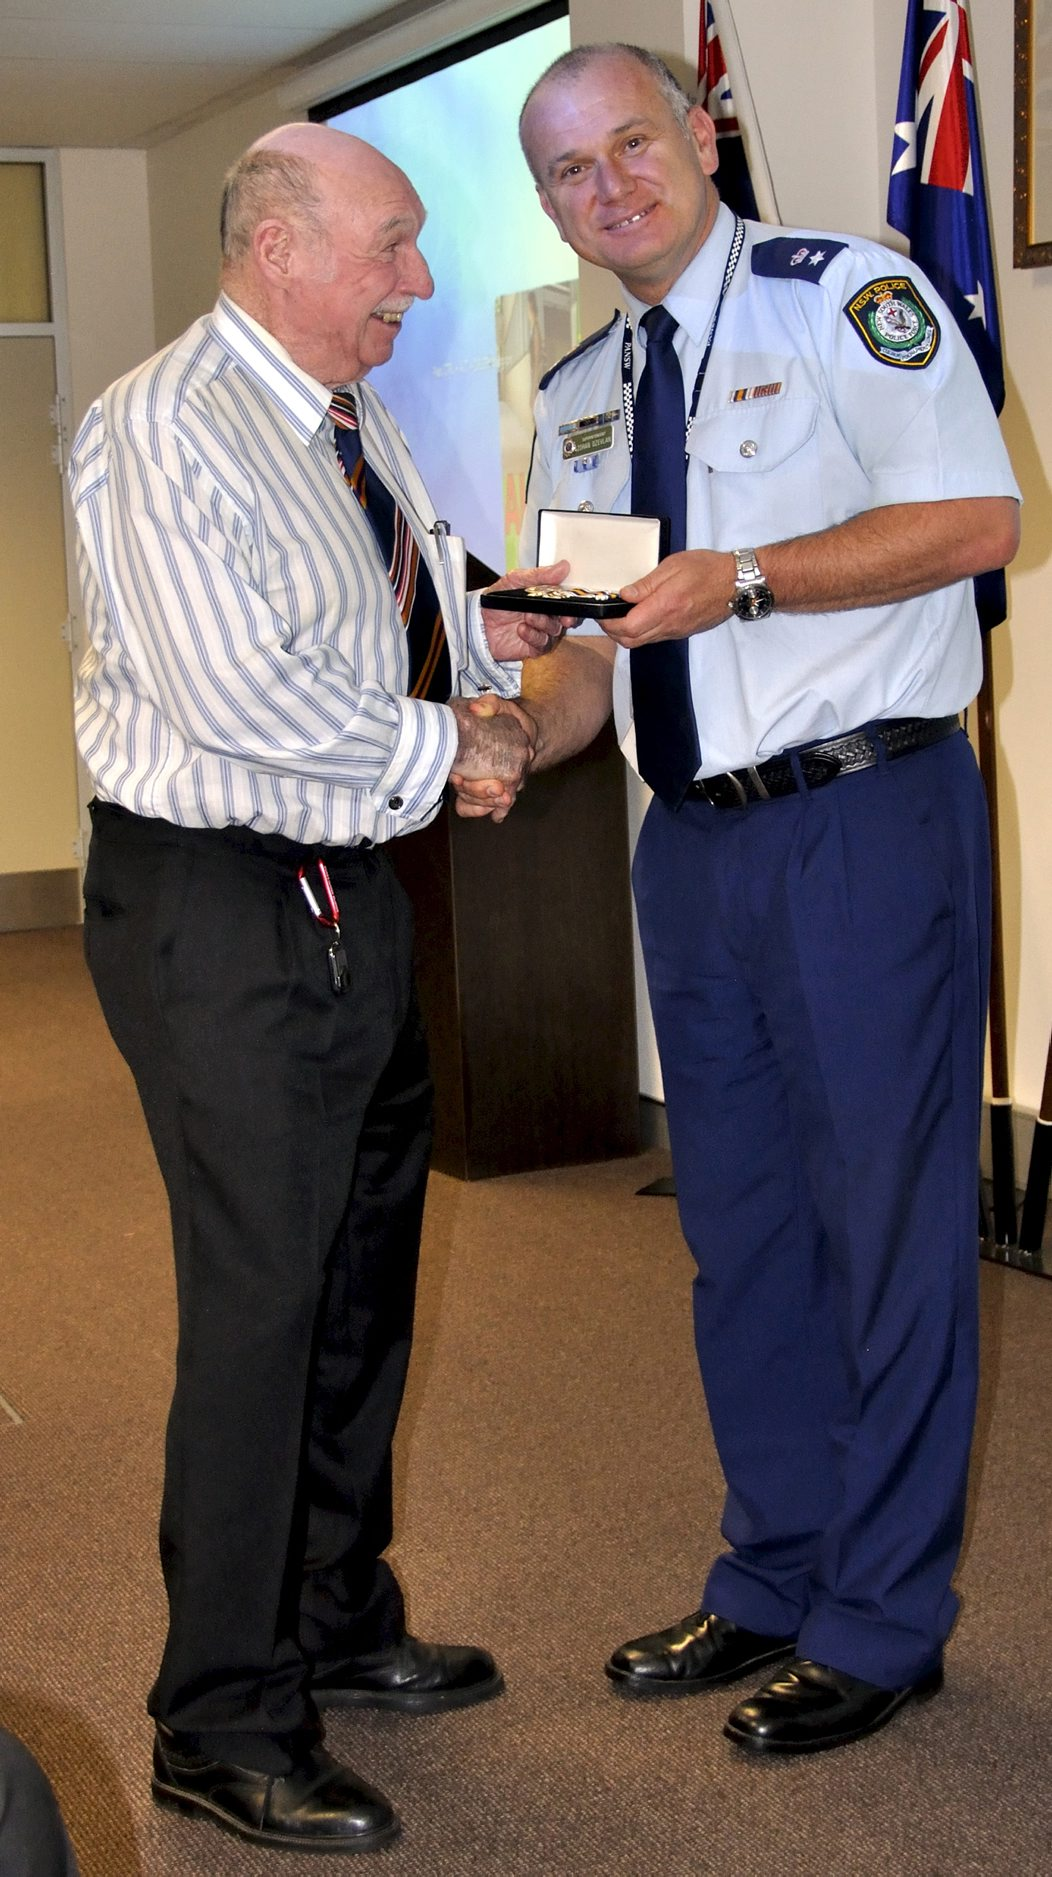 Sid AXAM receiving his National Police Service Medal at Retired Police Day - Lake Illawarra Police Station on 8 September 2016 by acting Local Area Commander, Supt. Zoran Dzevlan.